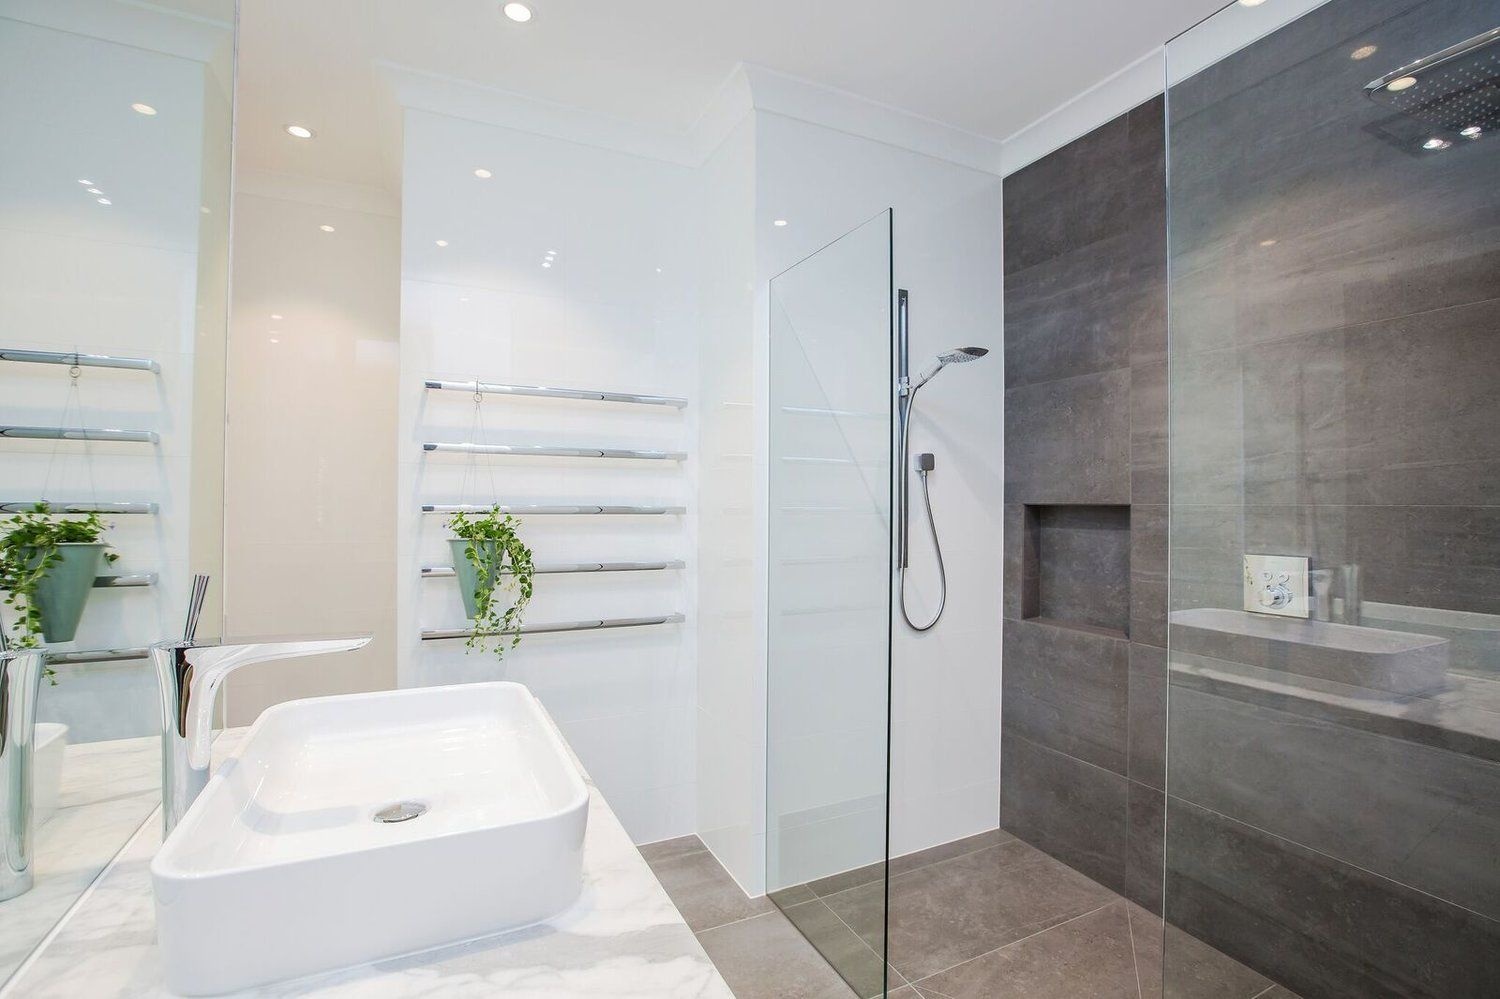 Bathroom Tiles & Stone - Italia Ceramics Adelaide | Natural stones ...